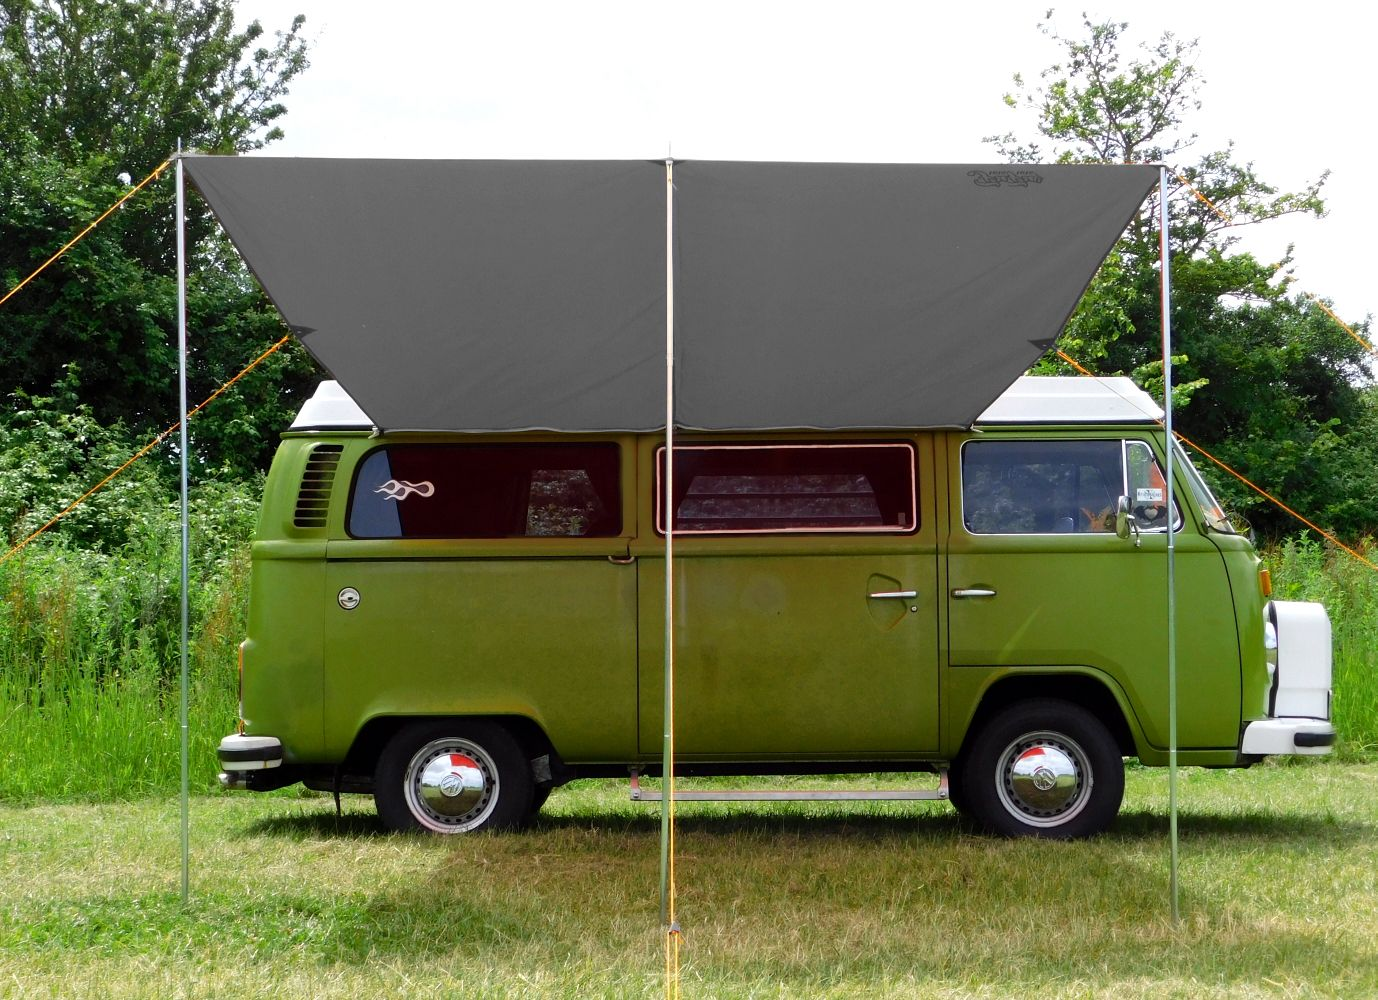 T2 T25 Connection Kit Debus Campervan Sun Canopy Awning Anthracite Grey